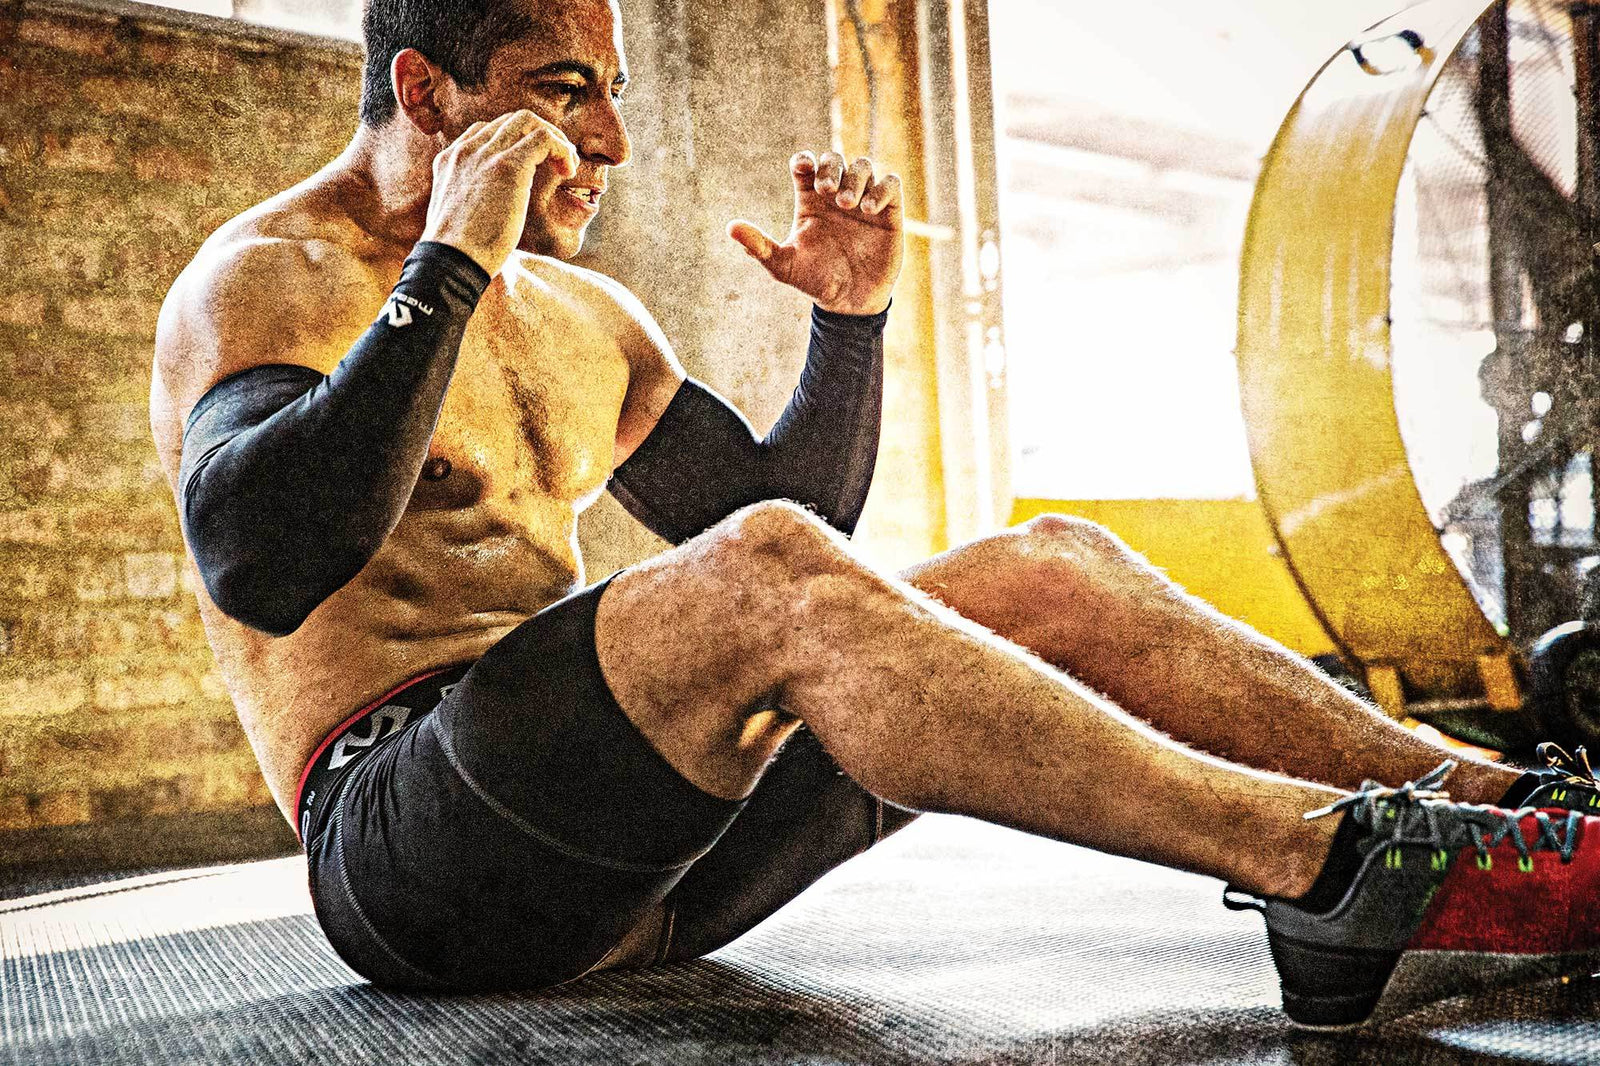 Top 10 Benefits Of Wearing Compression Shorts During Your Workout Mcdavid